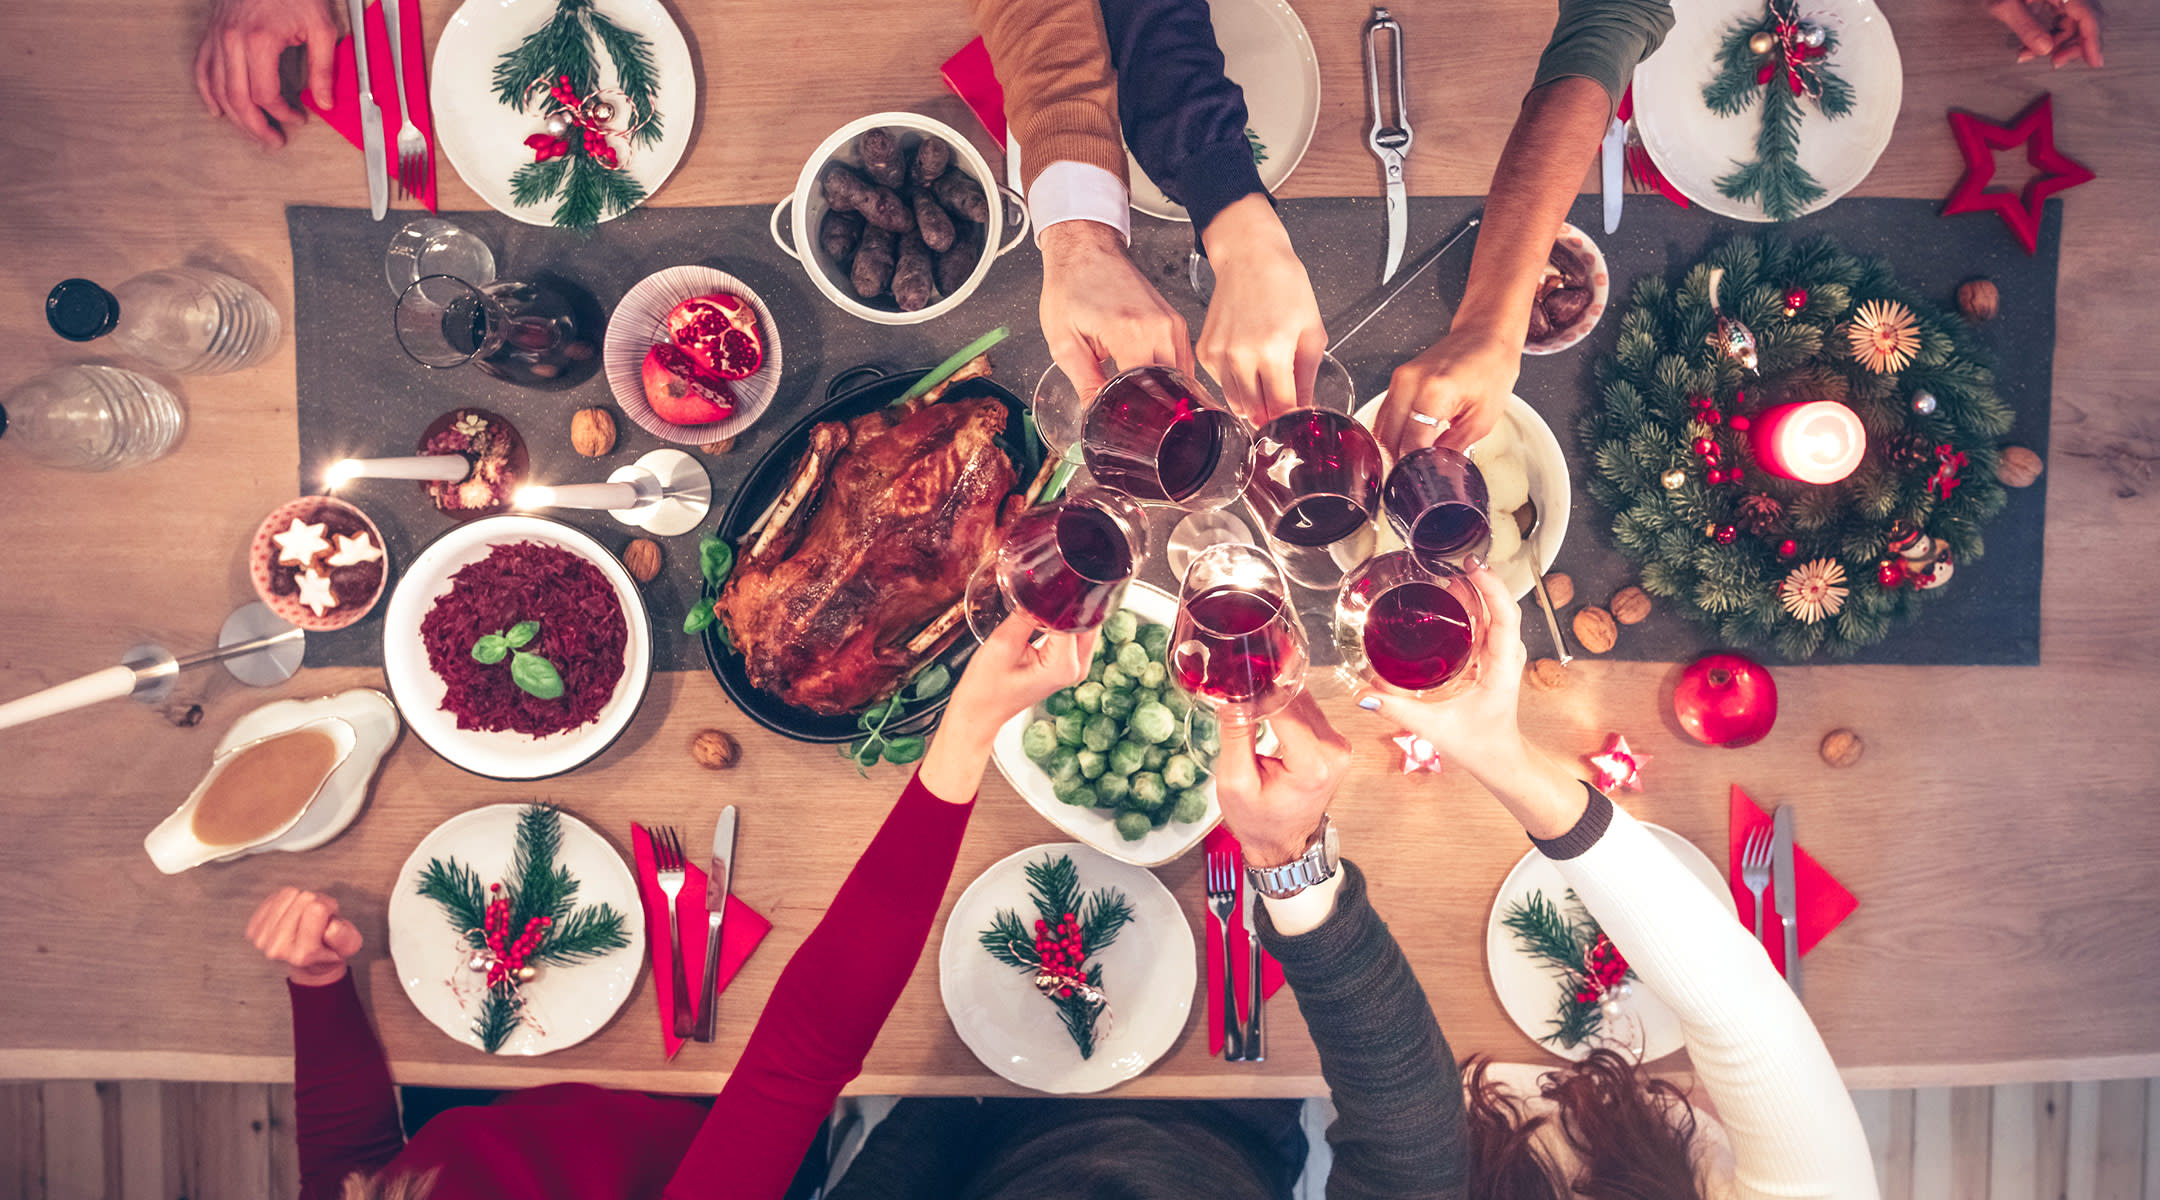 Adults Drinking Wine At Holiday Party